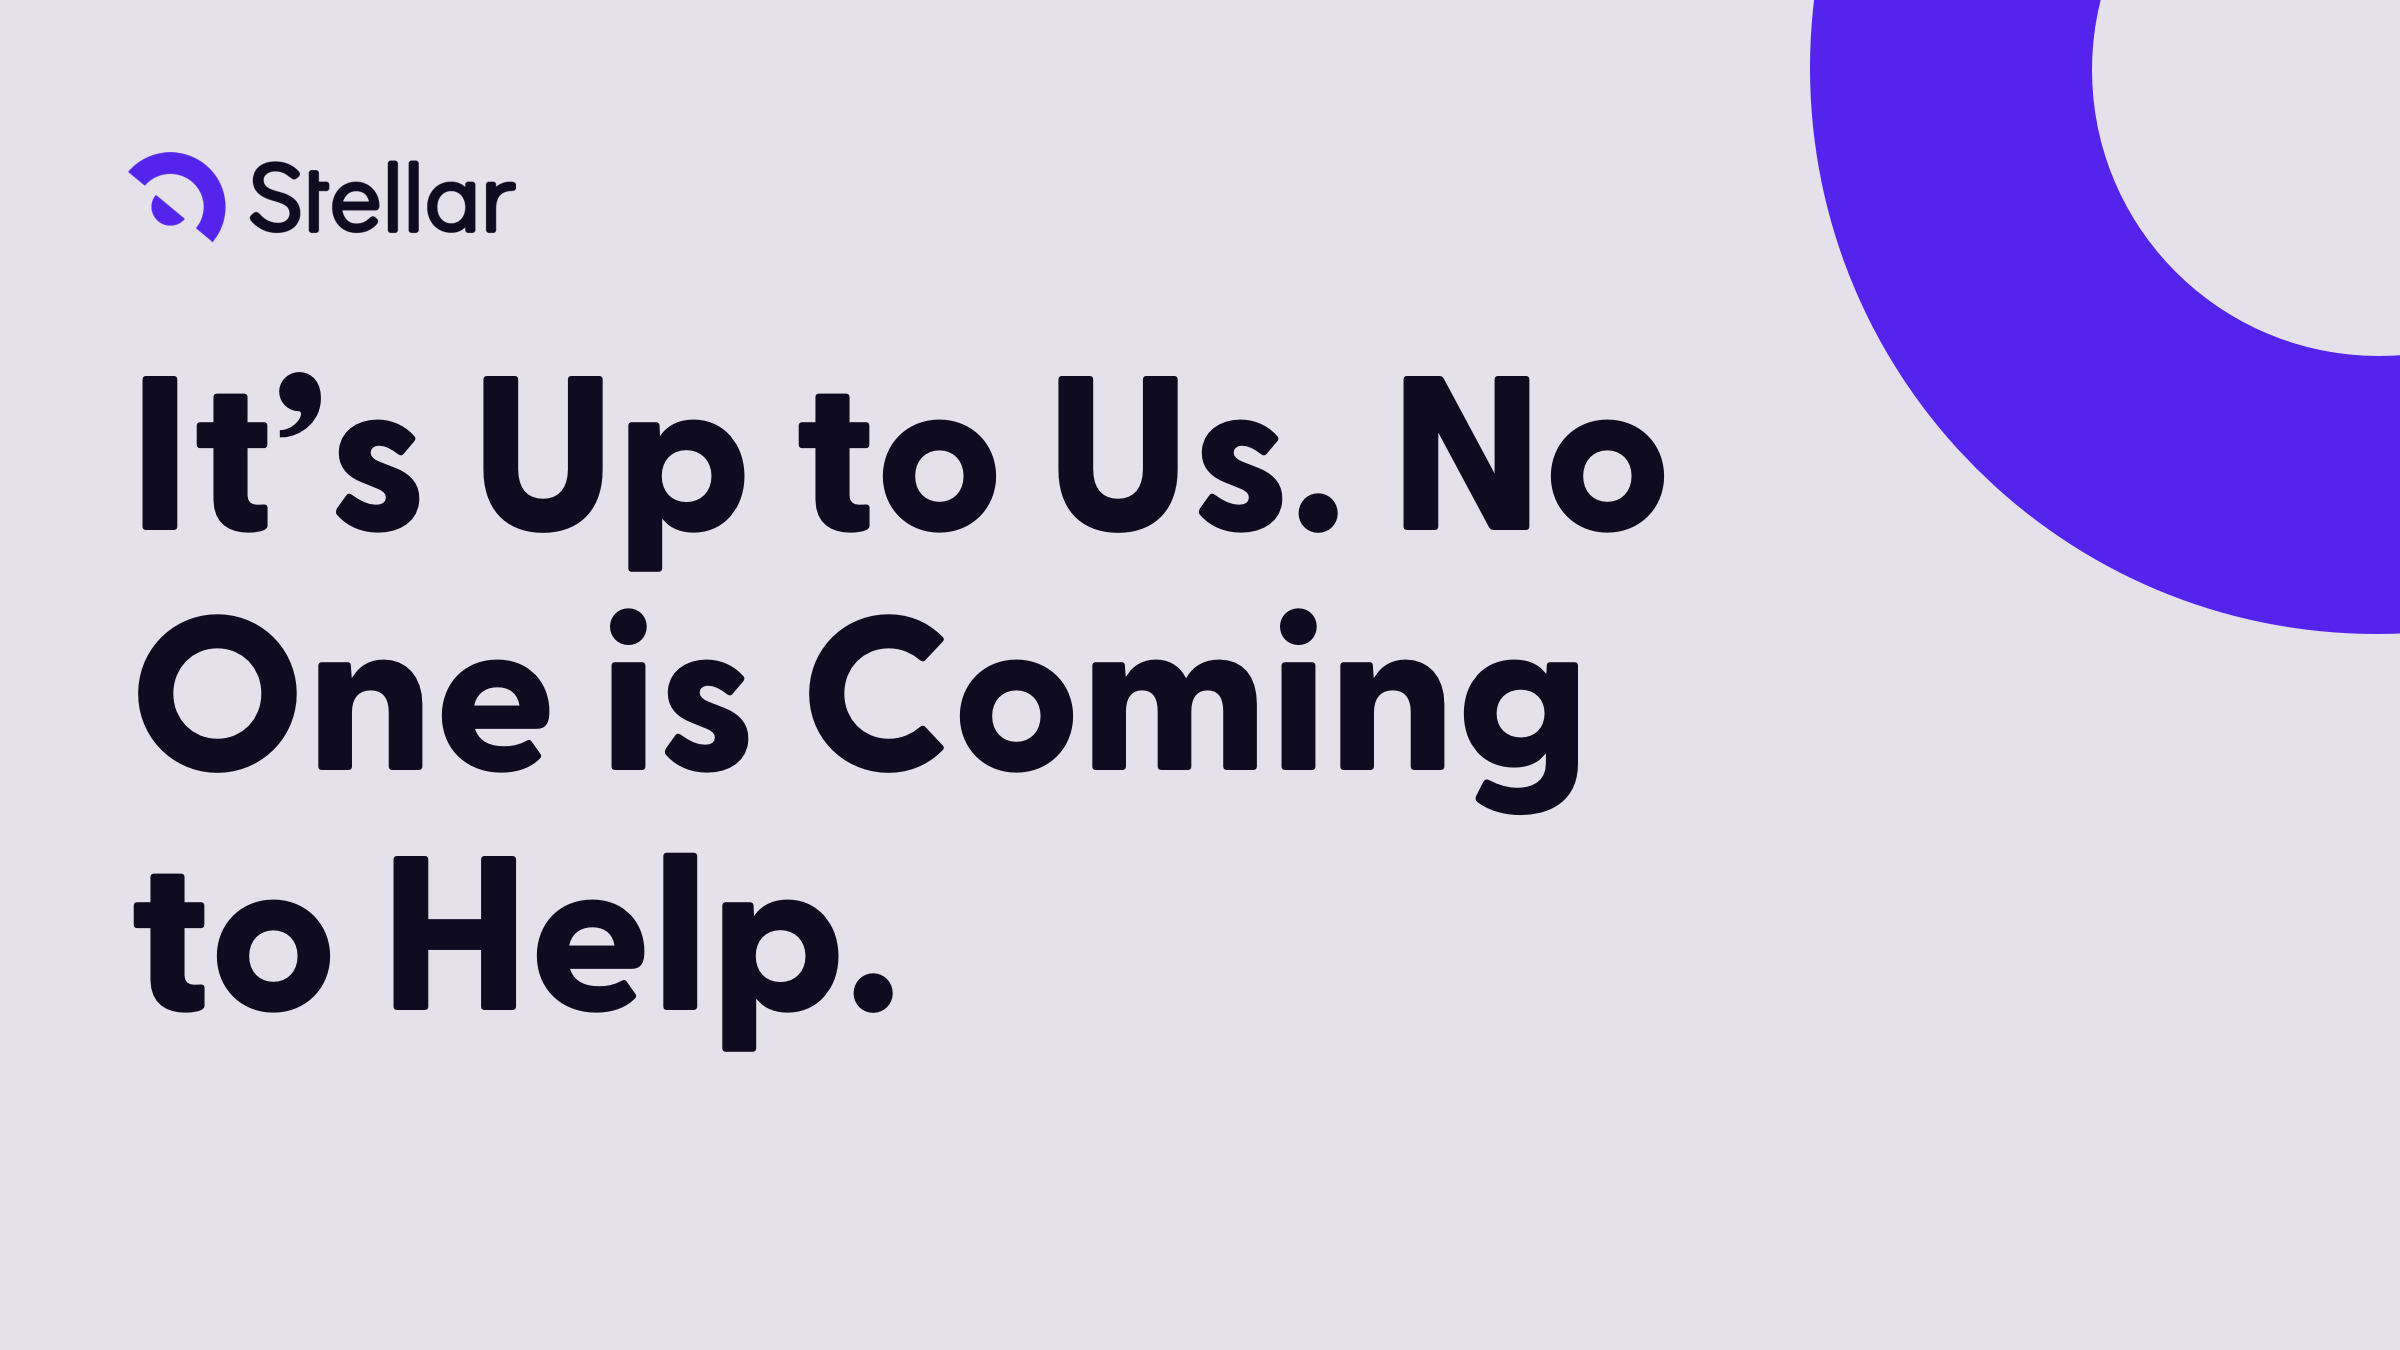 It's Up To Us.